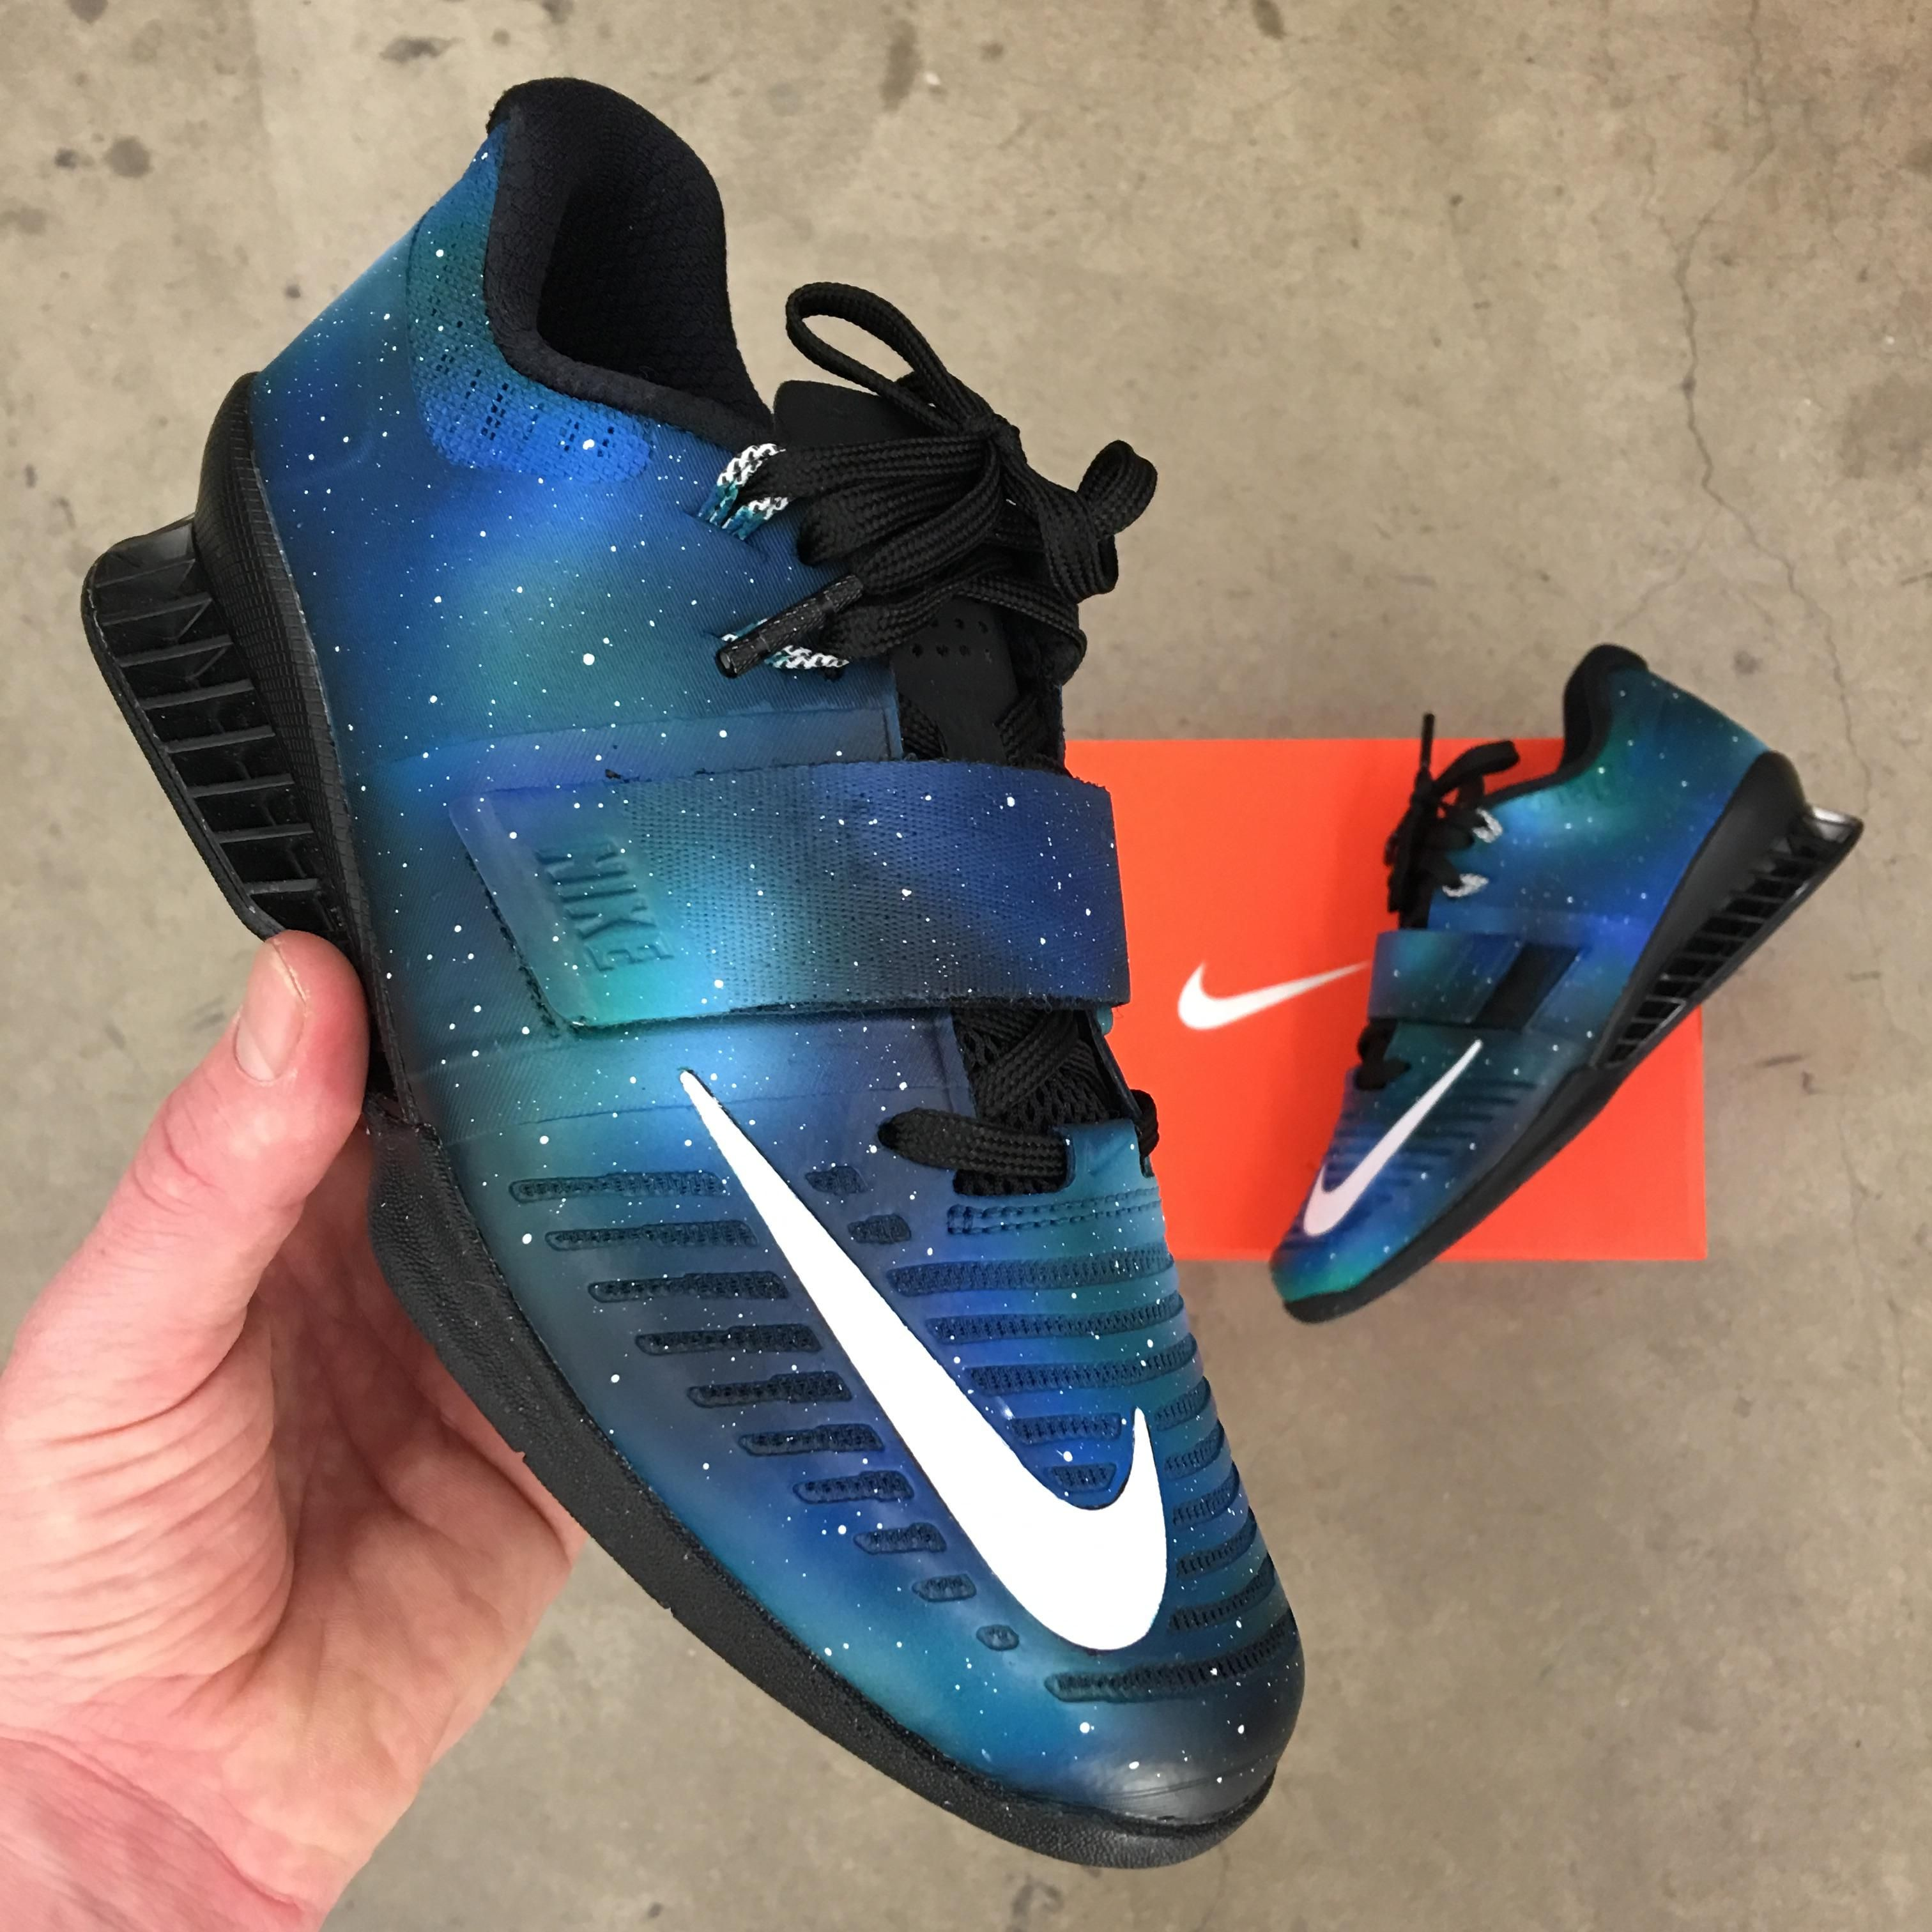 Hand Painted Galaxy Nike Romaleos 3  crossfit  fitness  WOD  workout   fitfam  gym  fit  health  training  CrossFitGames  bodybuilding 882b845b9